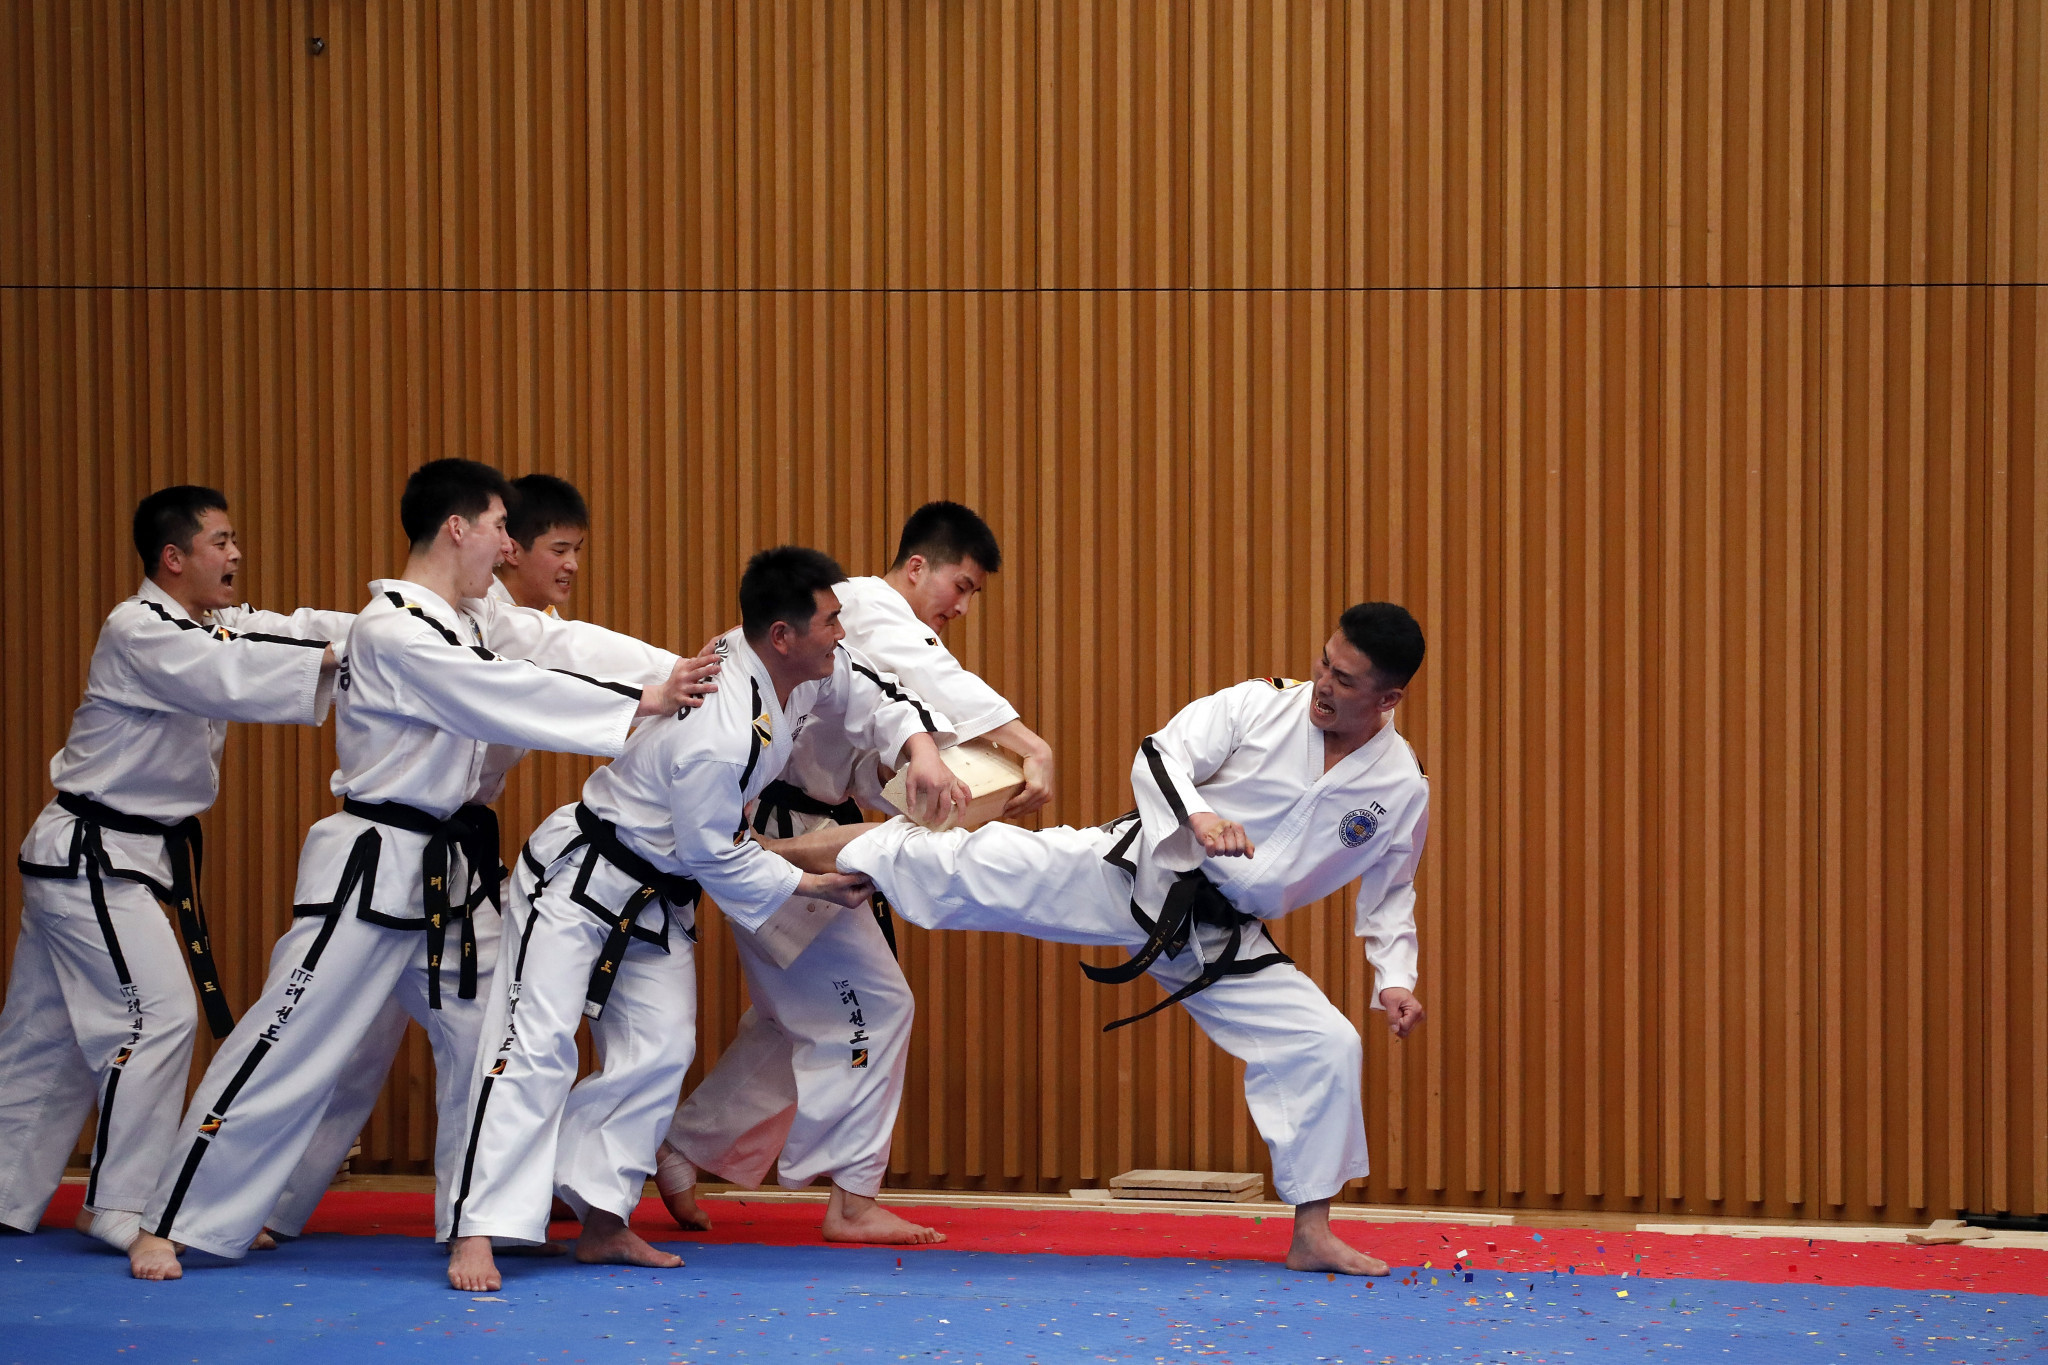 The legislation was designed to protect South Korea's status as the home of taekwondo ©Getty Images